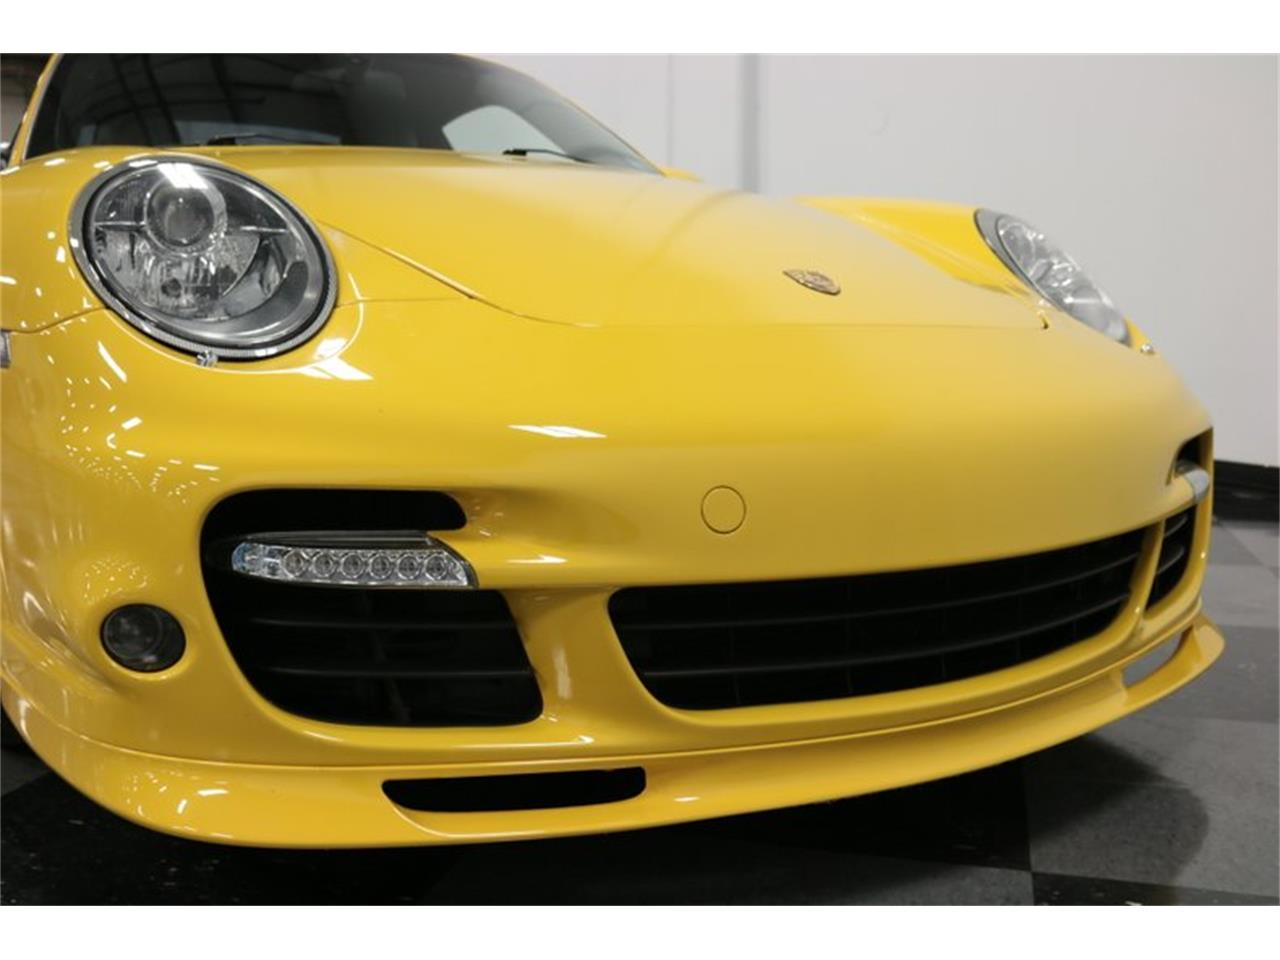 2007 Porsche 911 for sale in Ft Worth, TX – photo 76